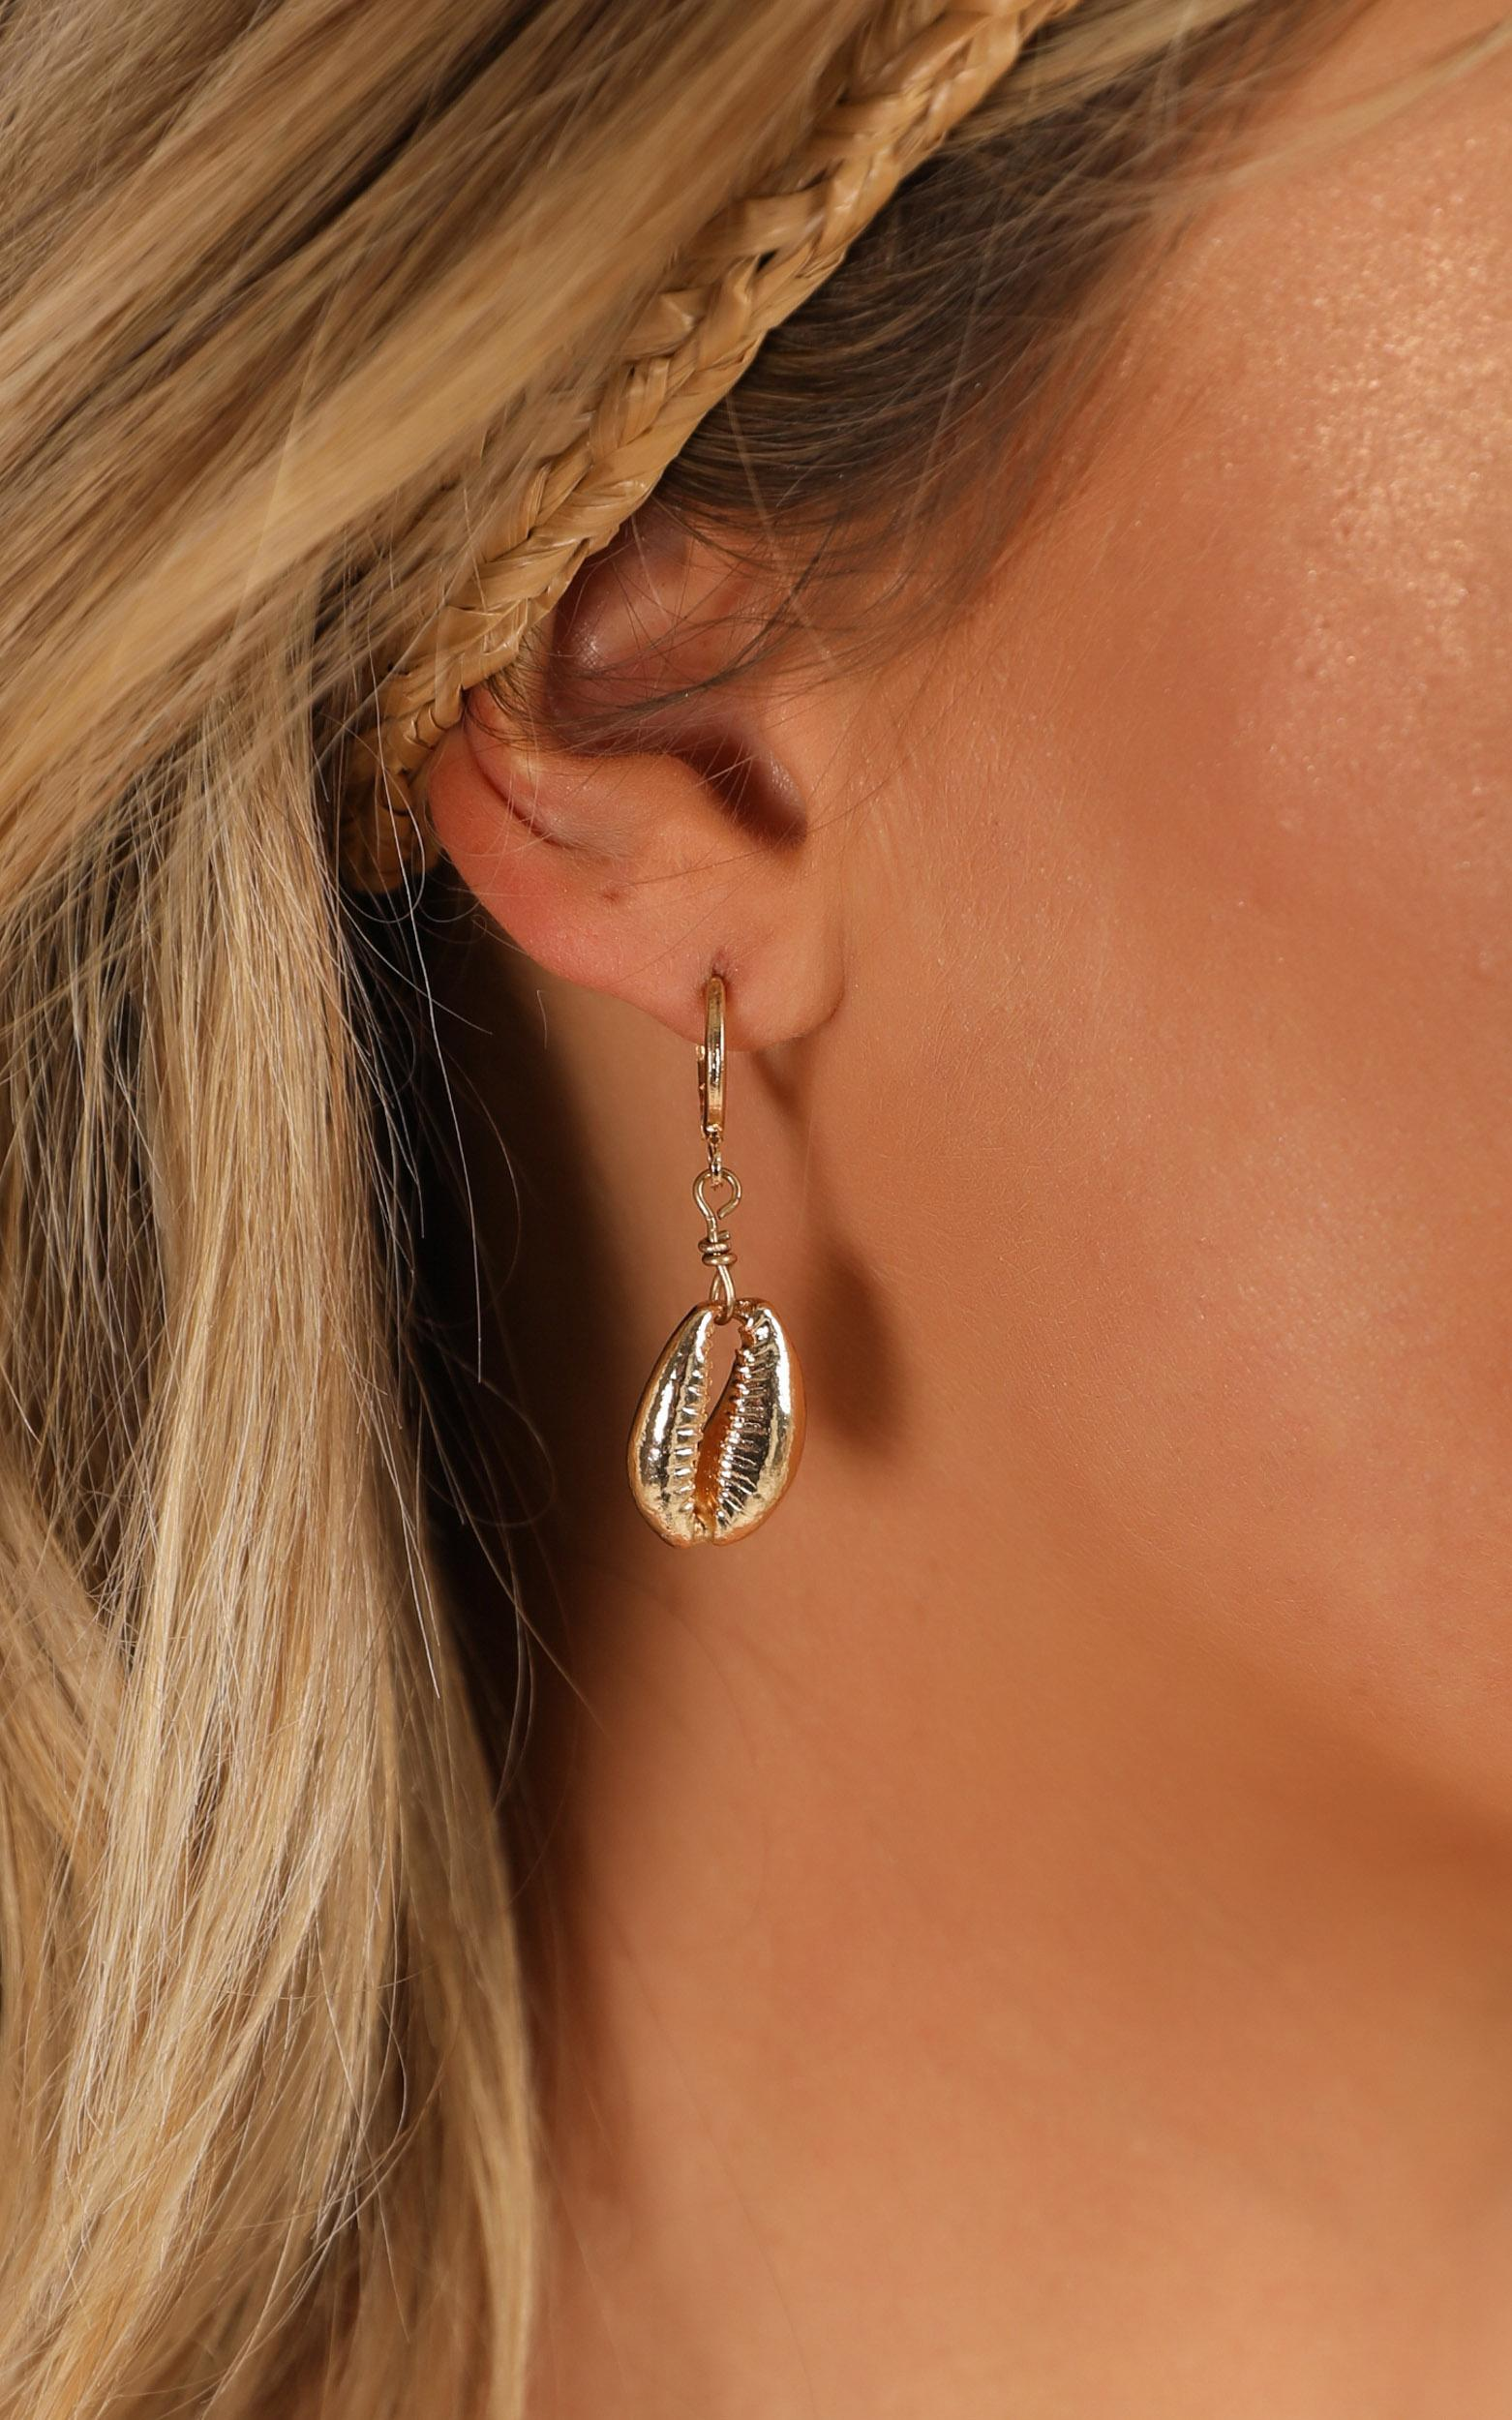 No Hesitation Earrings Set In Gold, , hi-res image number null